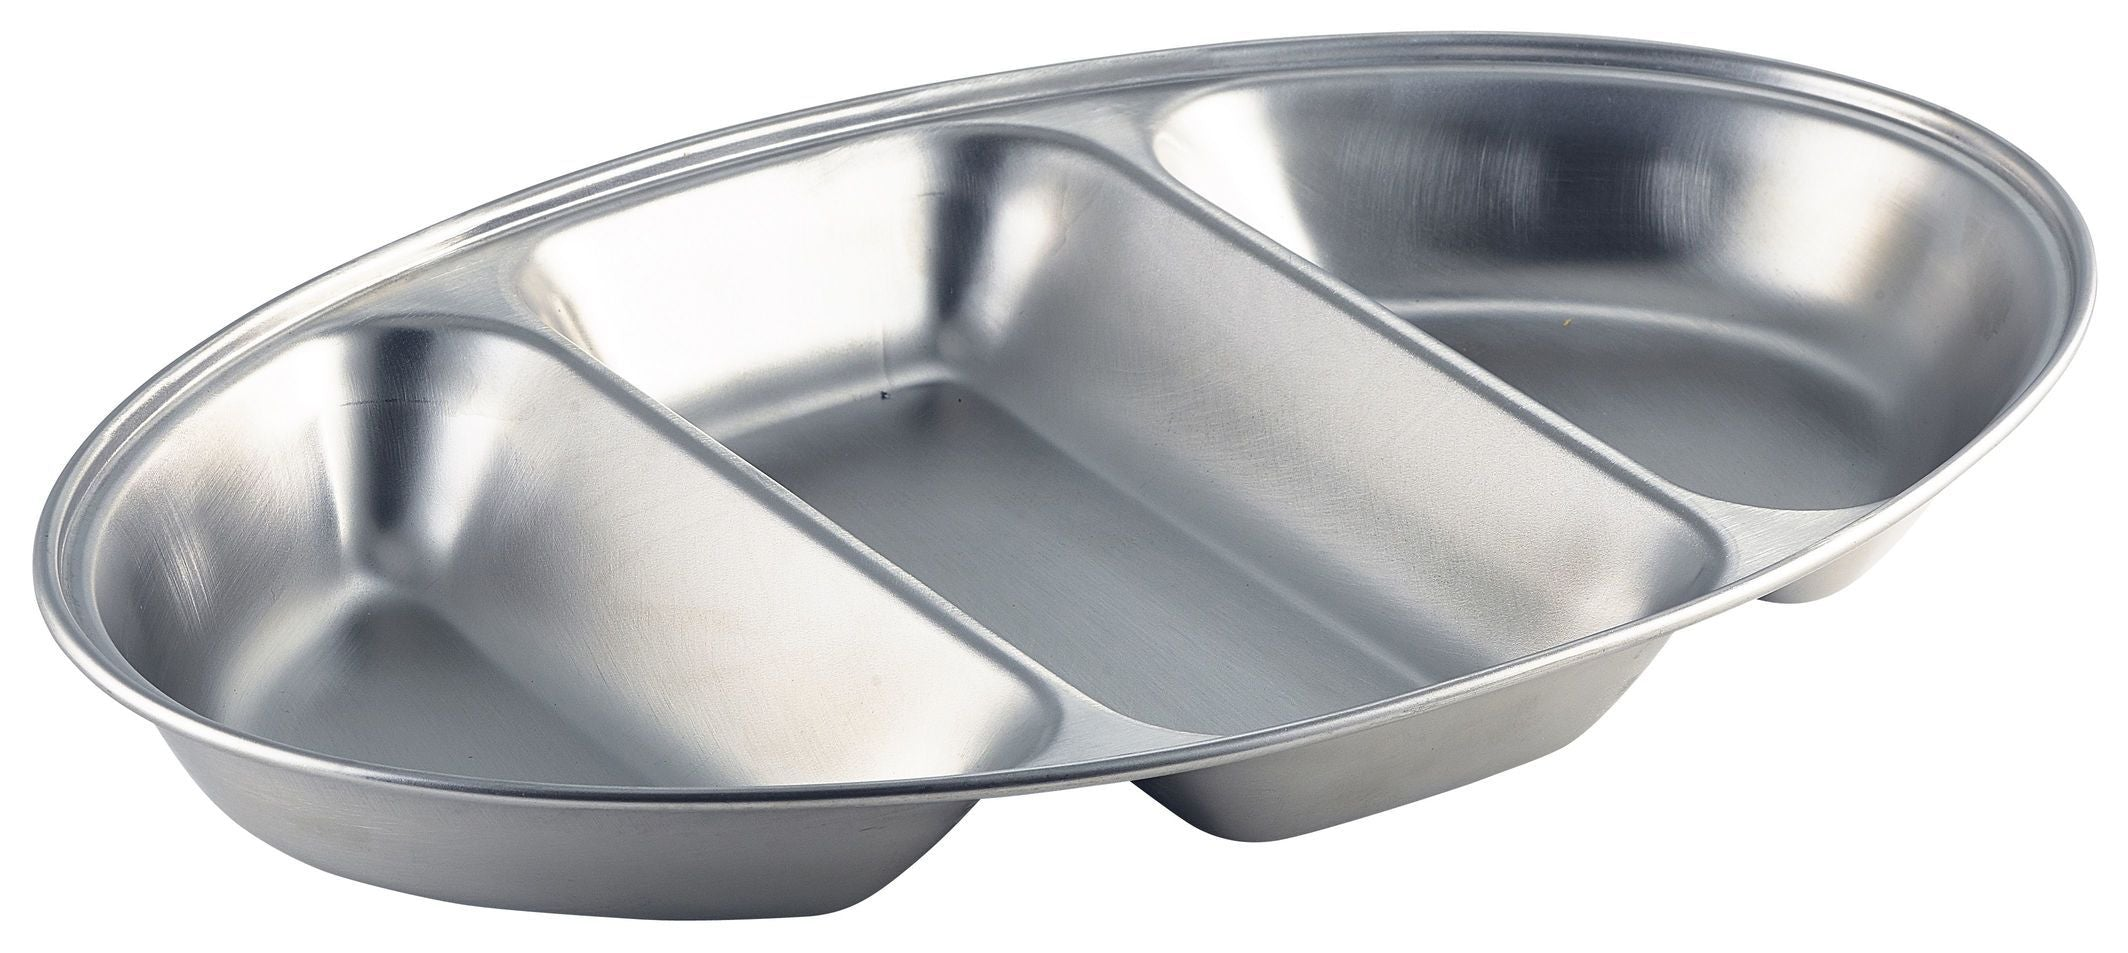 GenWare Stainless Steel Three Division Oval Vegetable Dish 35cm/14""